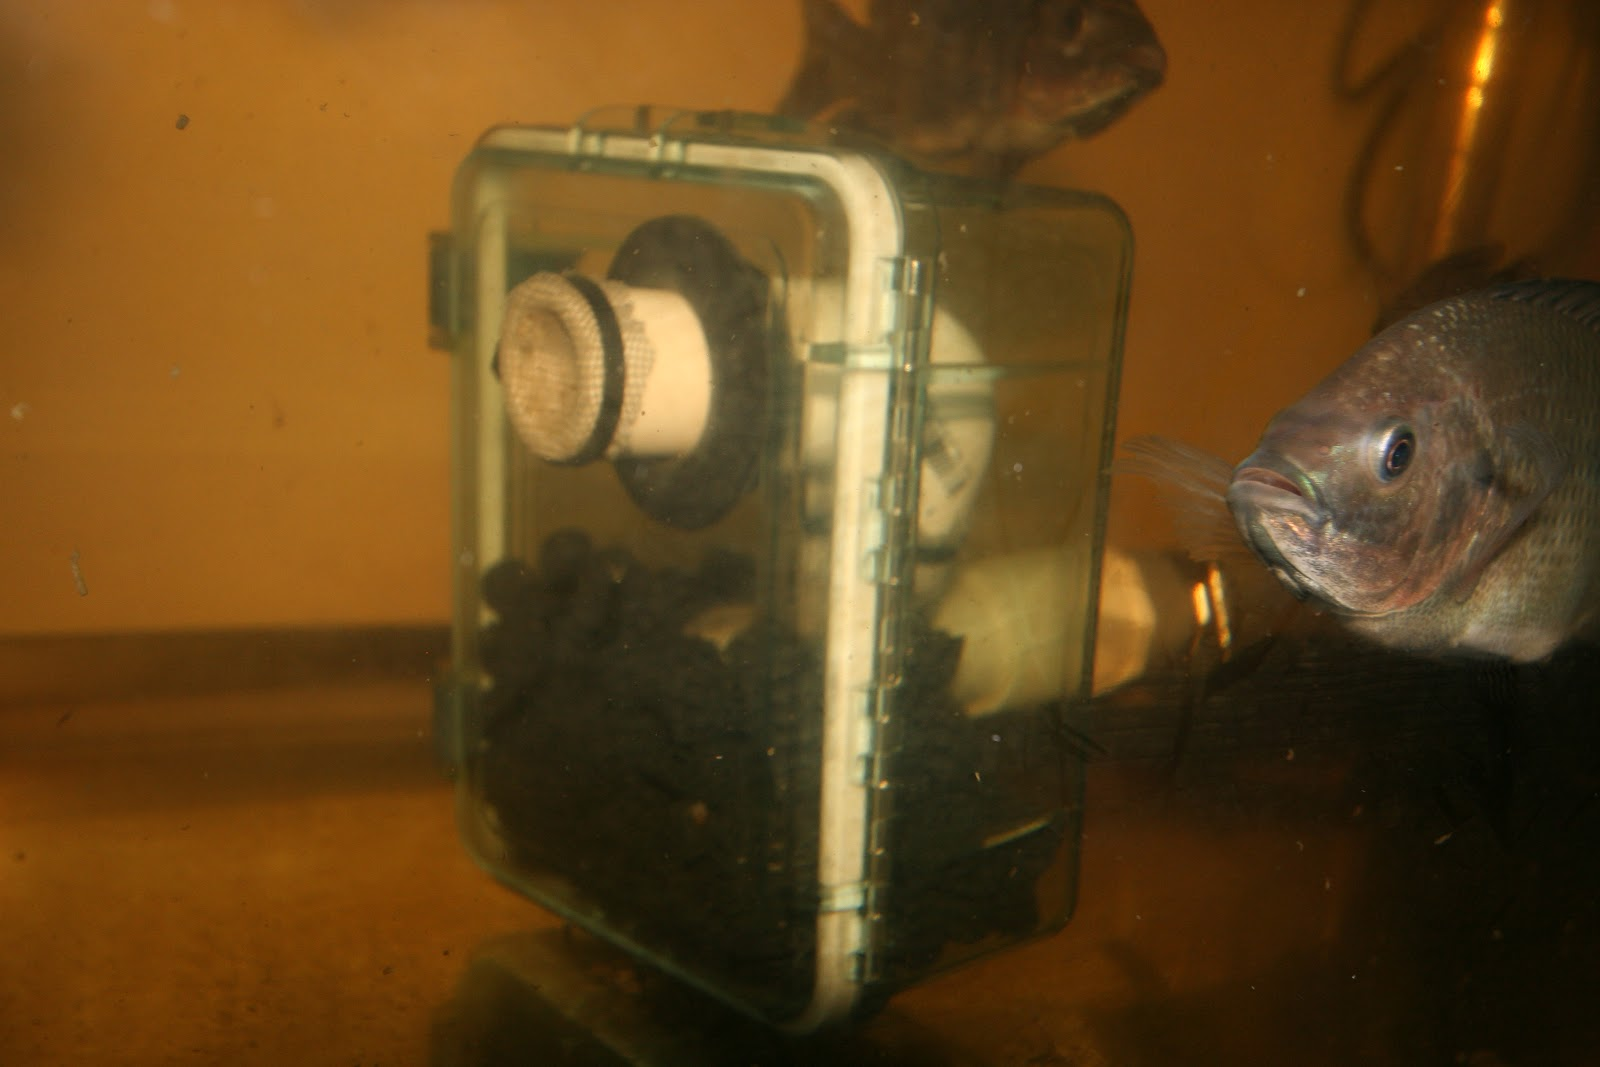 Aquaponic Moving Bed Filter, nitrogen cycle enricher